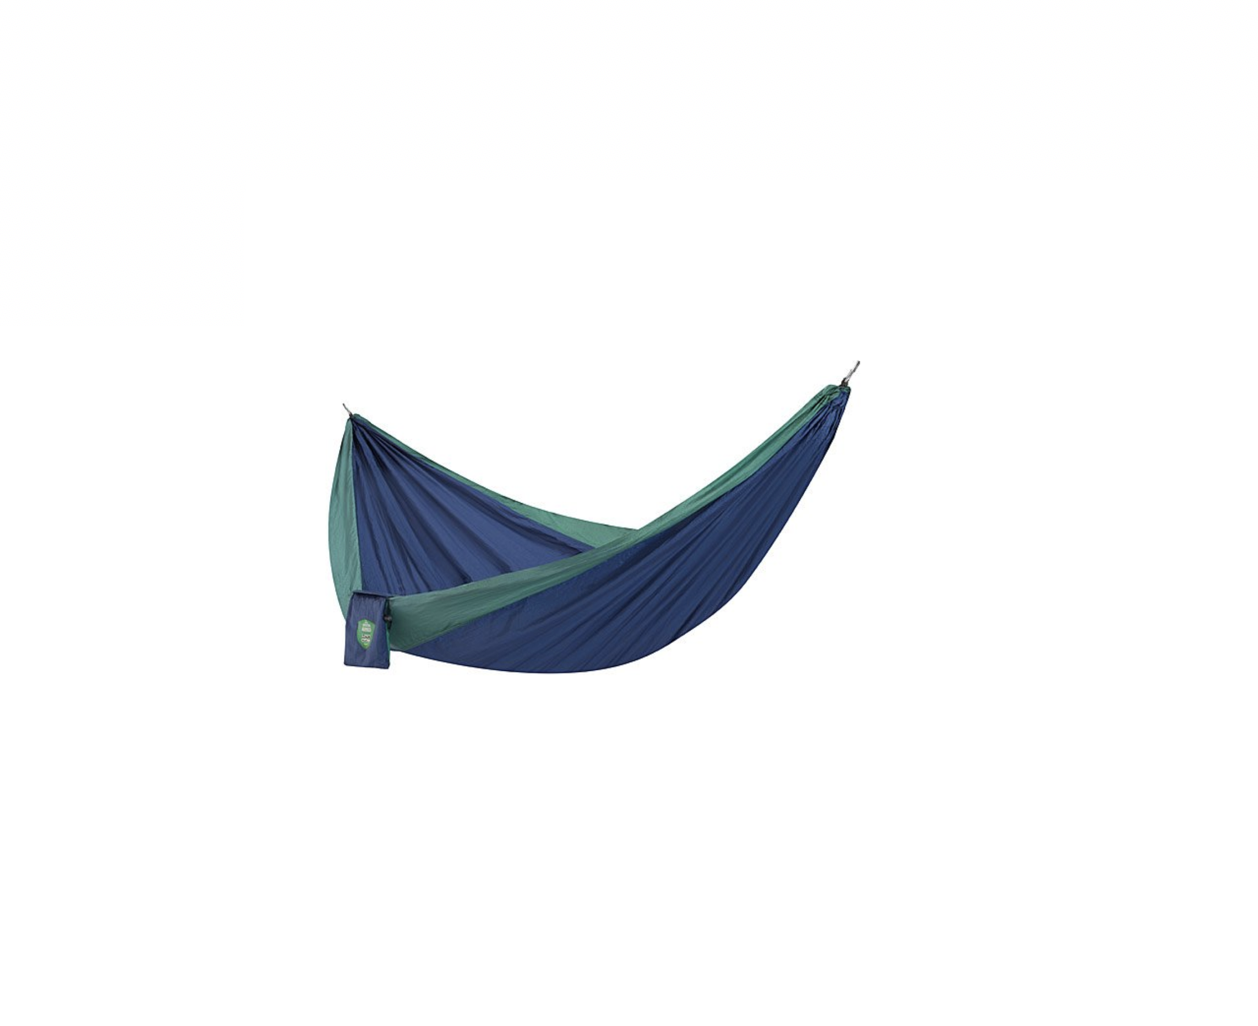 Travel gifts for her - Do Good Travel Hammock  sc 1 st  Womanu0027s Day & 26 Best Travel Gifts for Her - Unique Christmas Gift Ideas for Travelers